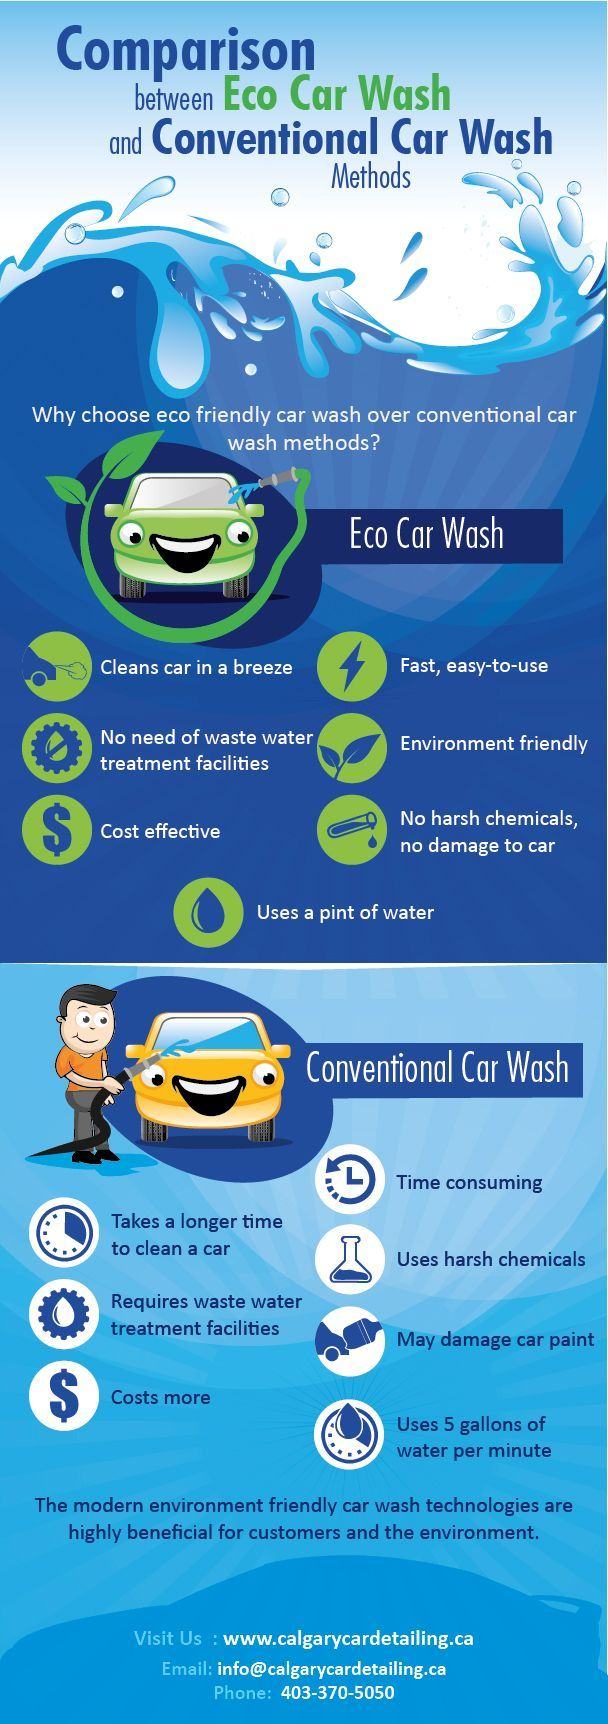 This infographic httpcalgarycardetailingblogcomparison this infographic httpcalgarycardetailingblogcomparison between eco car wash and conventional car wash methods highlights the benefits of fandeluxe Gallery